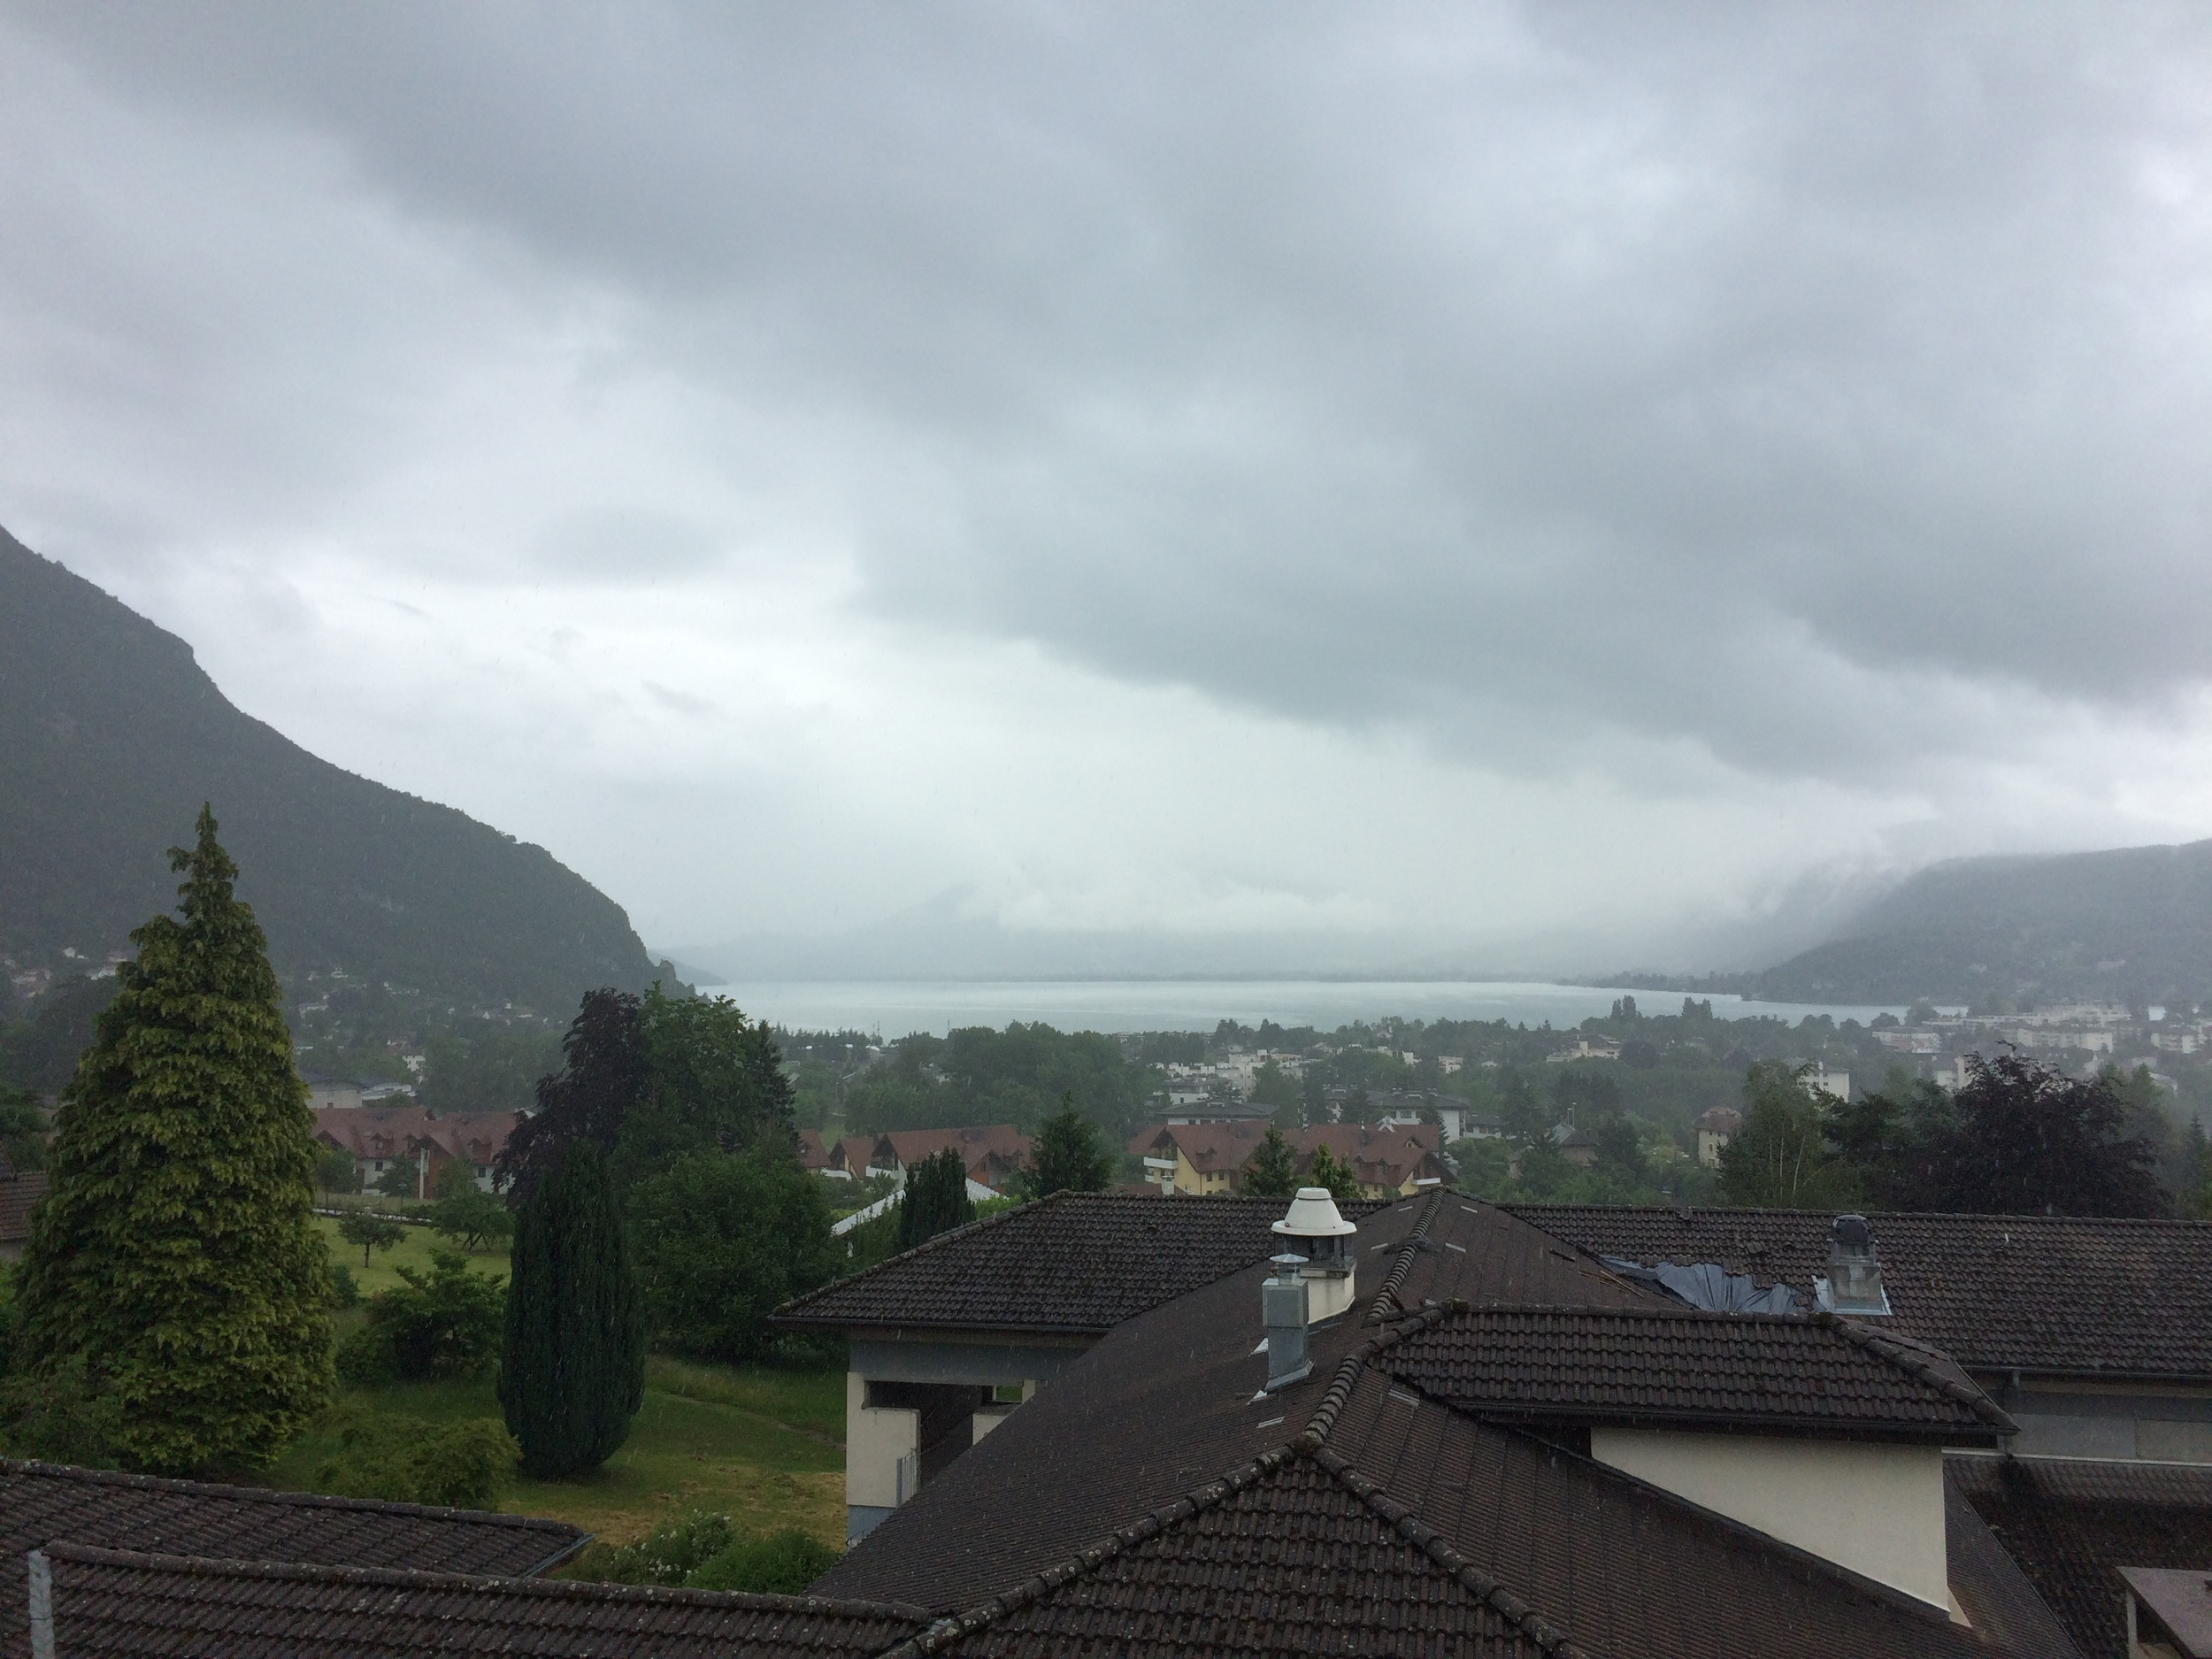 View of Annecy from the hostel we stayed at.